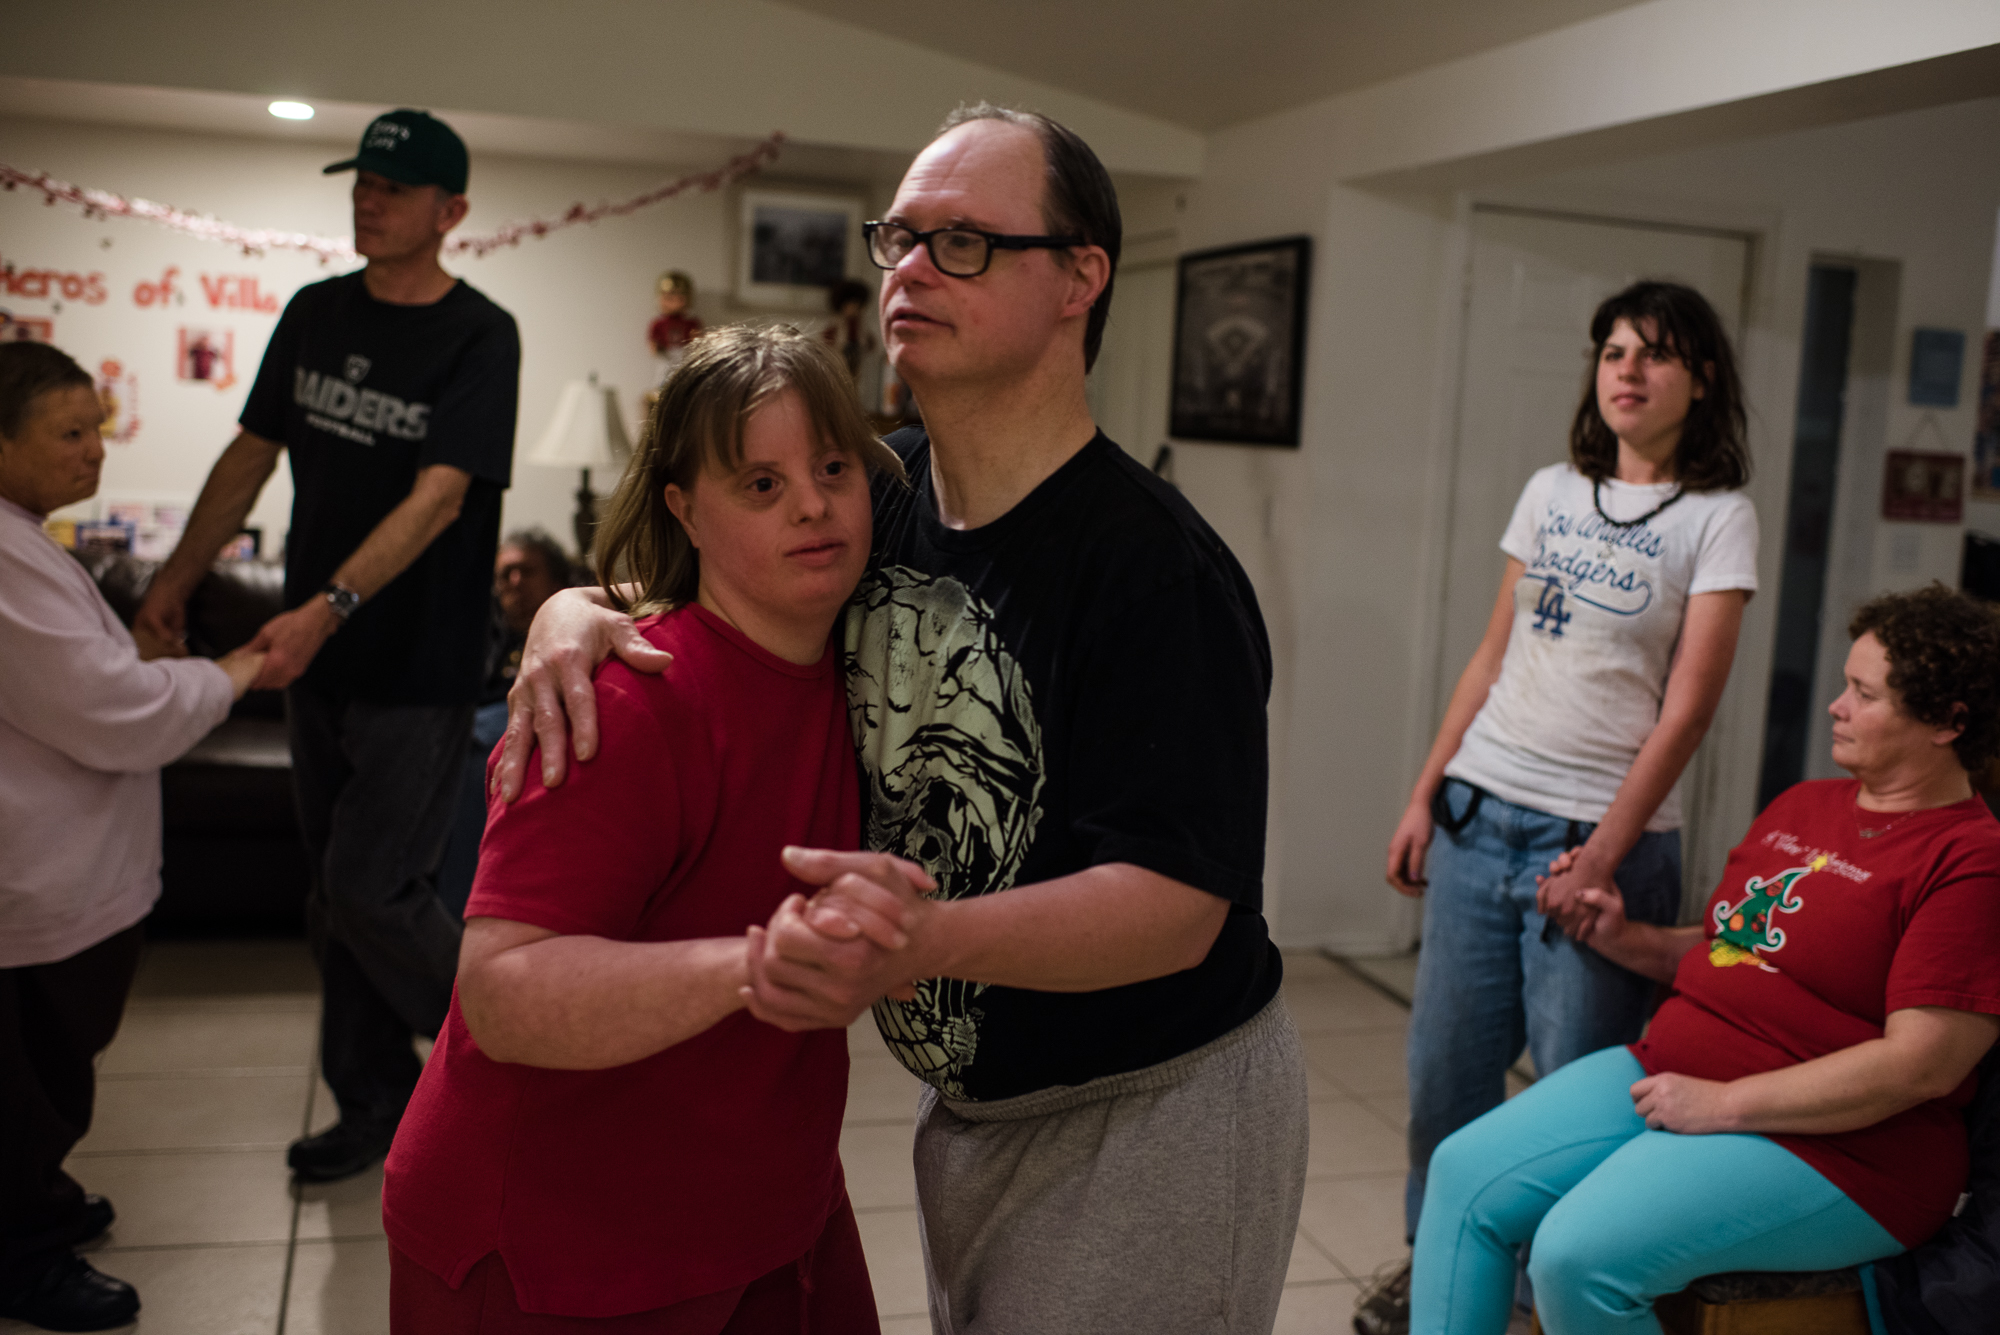 Krysta dances with new love interest, , at the Valentine's Day party inside one of the homes at the ranch.